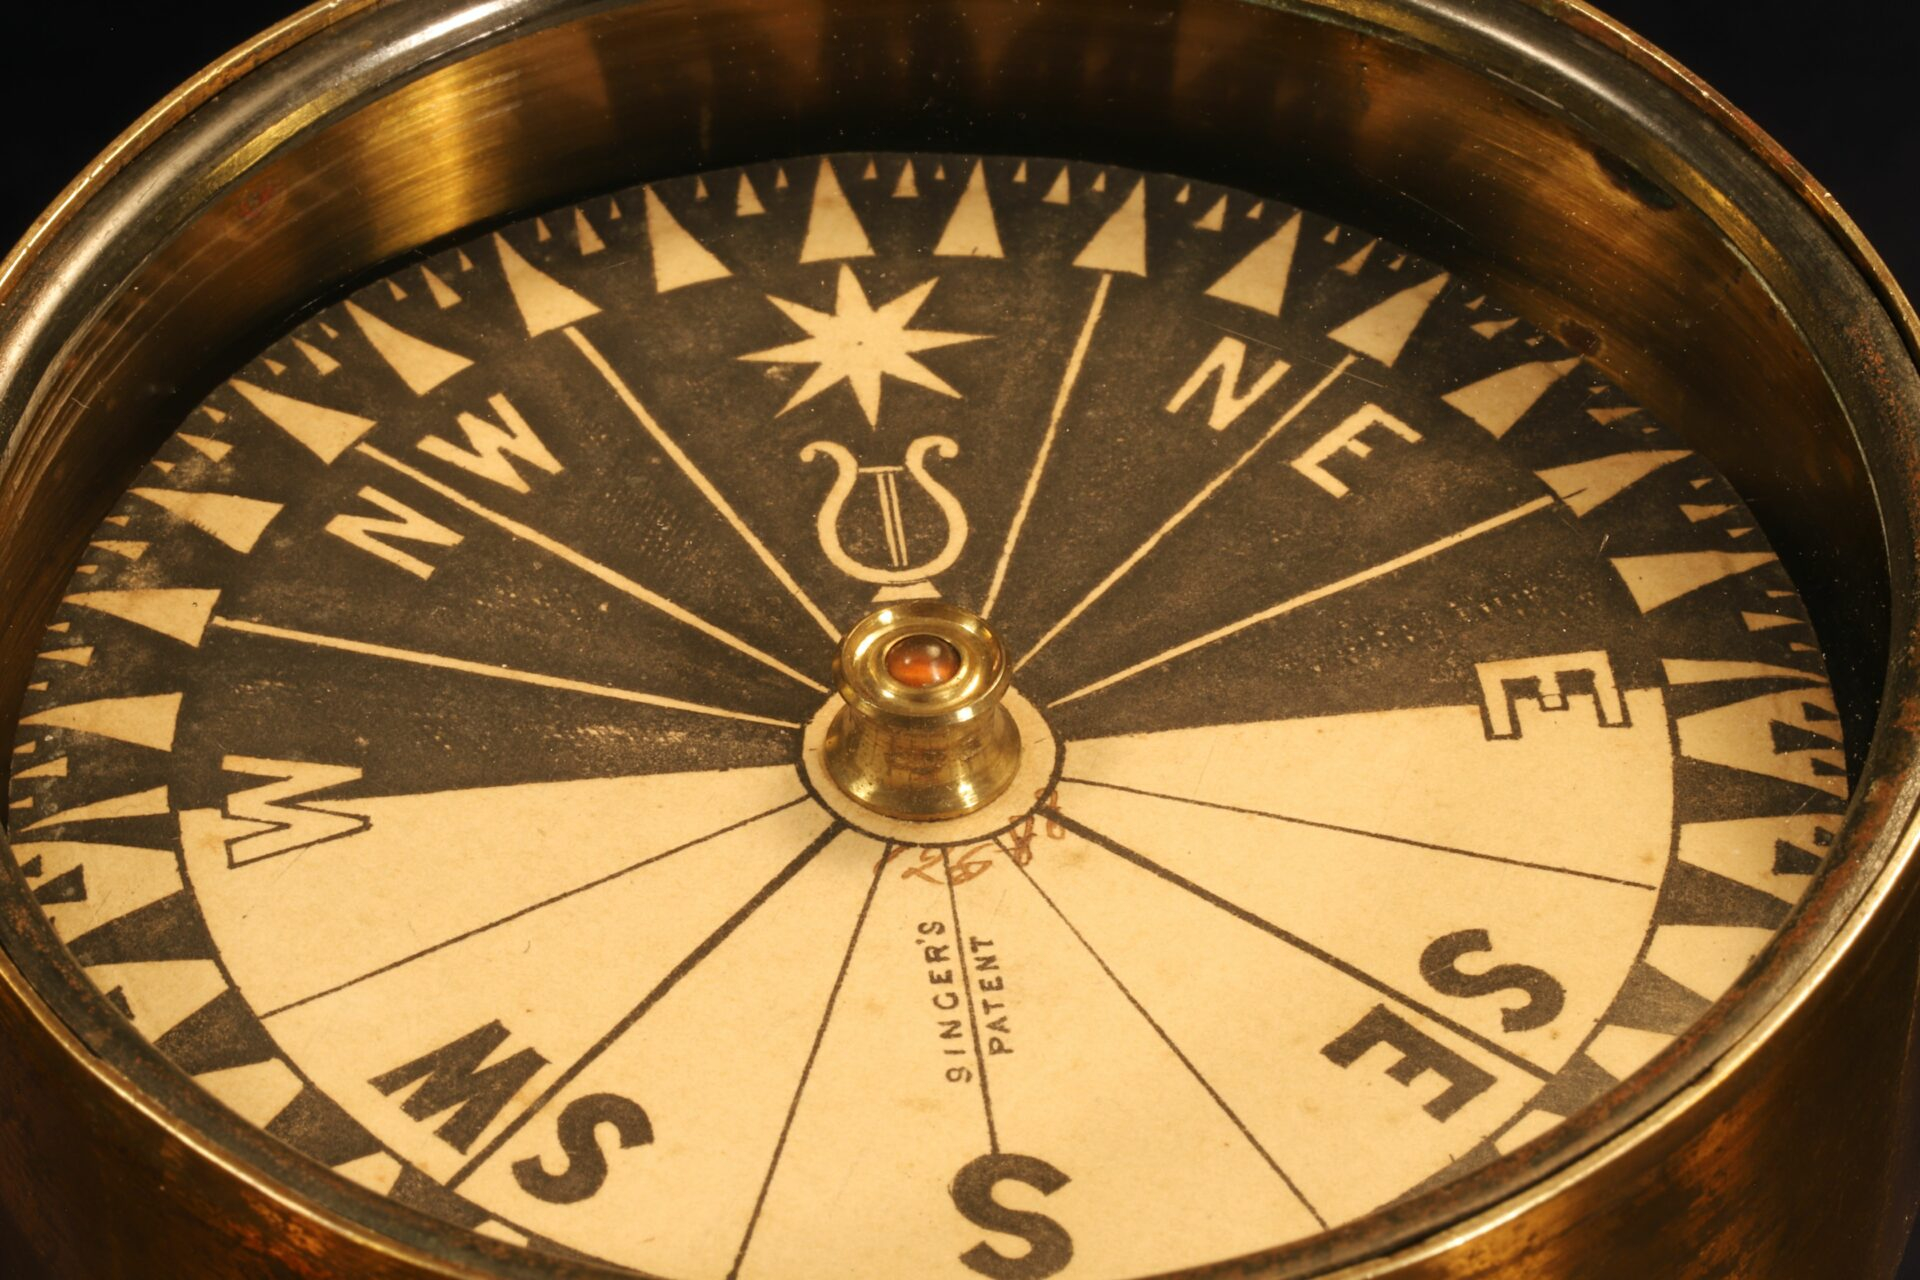 Image of Singers Patent Night Compass No 12588 c1865 showing close up of dial